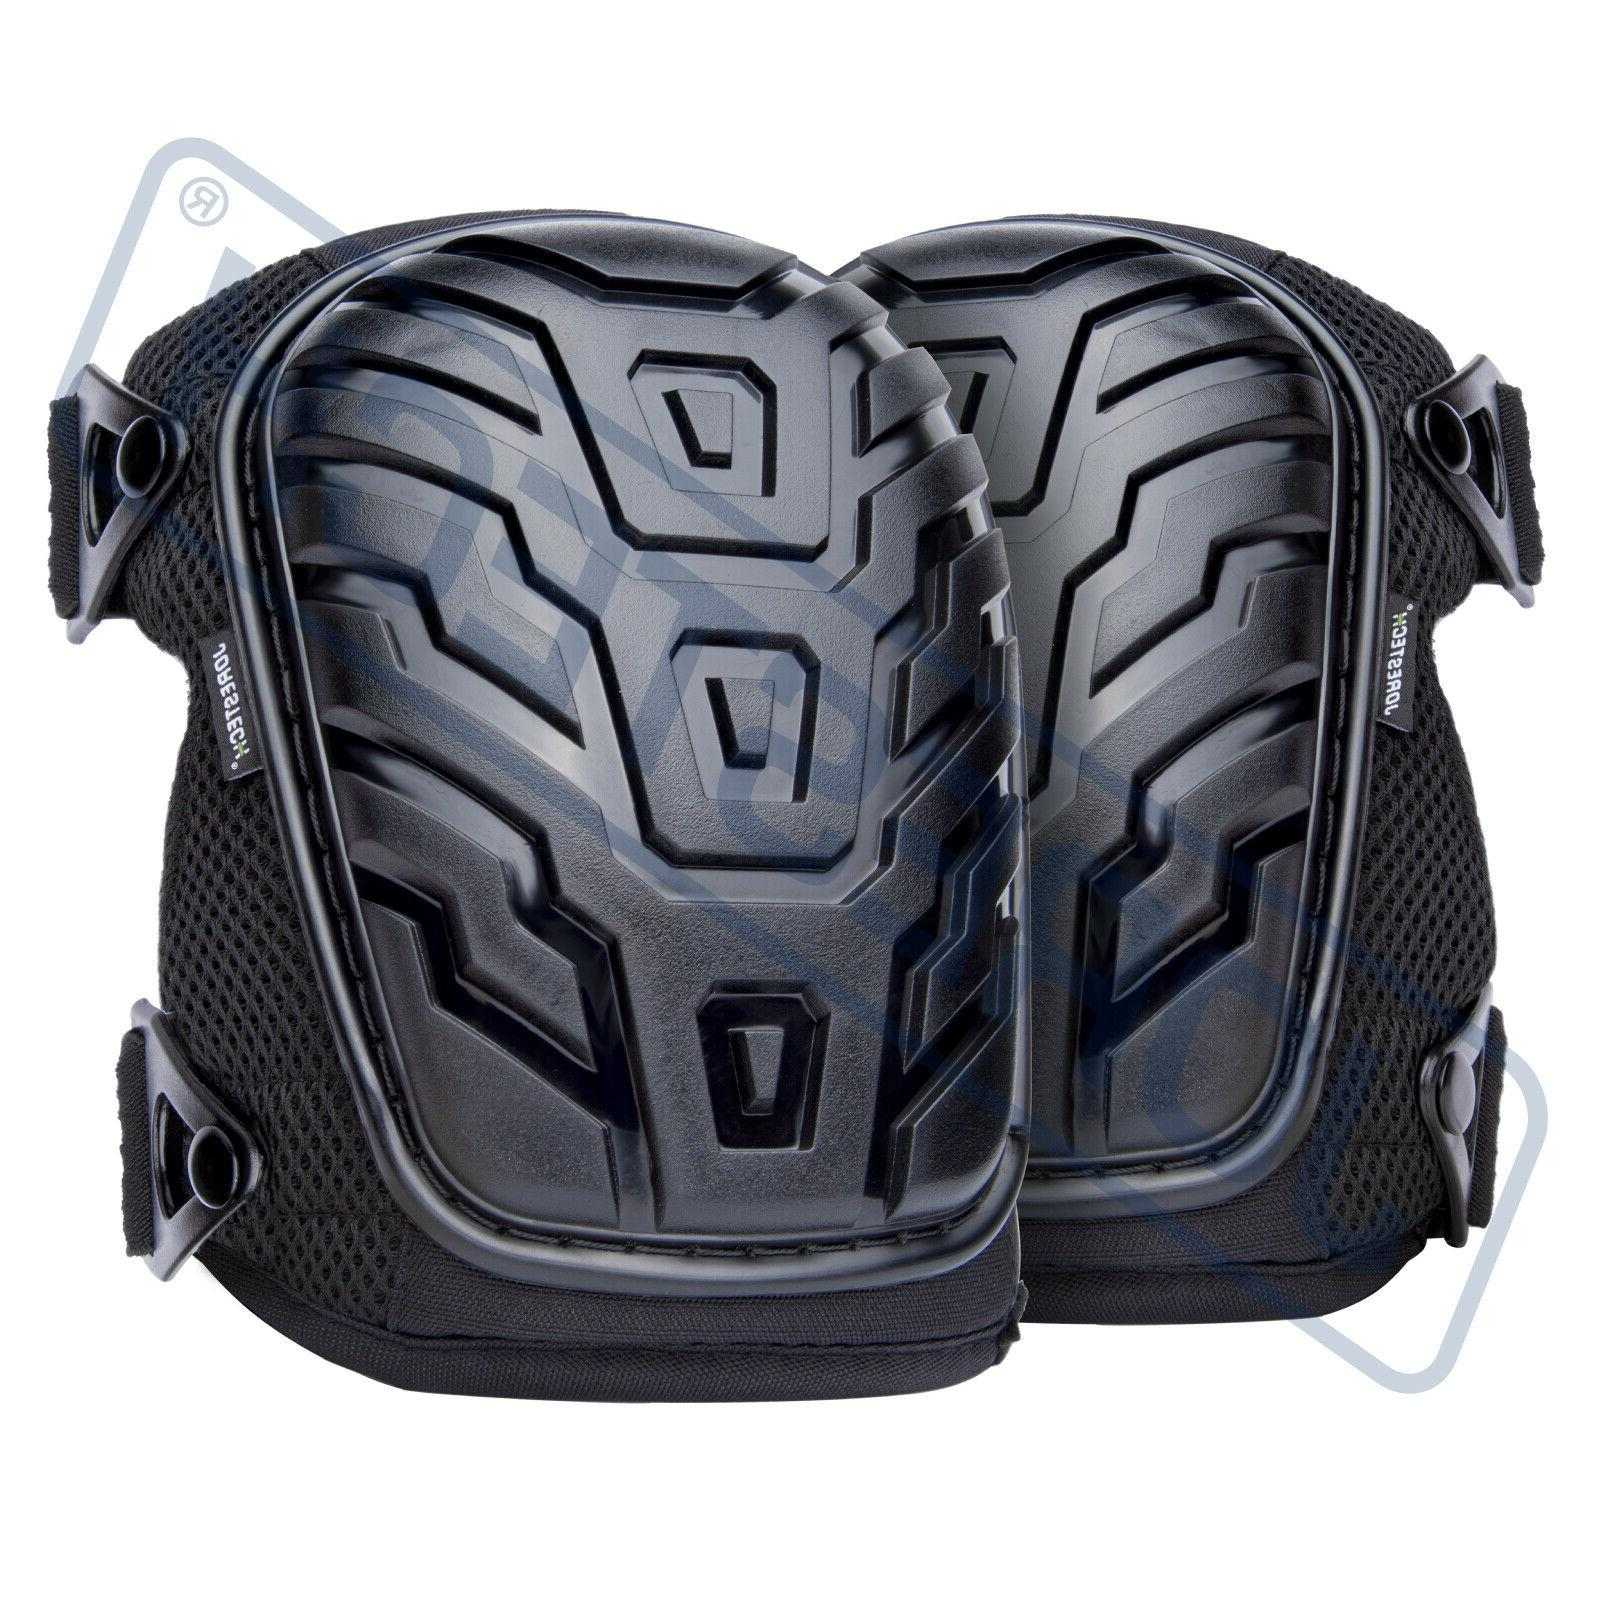 construction gel knee pads safety leg protectors